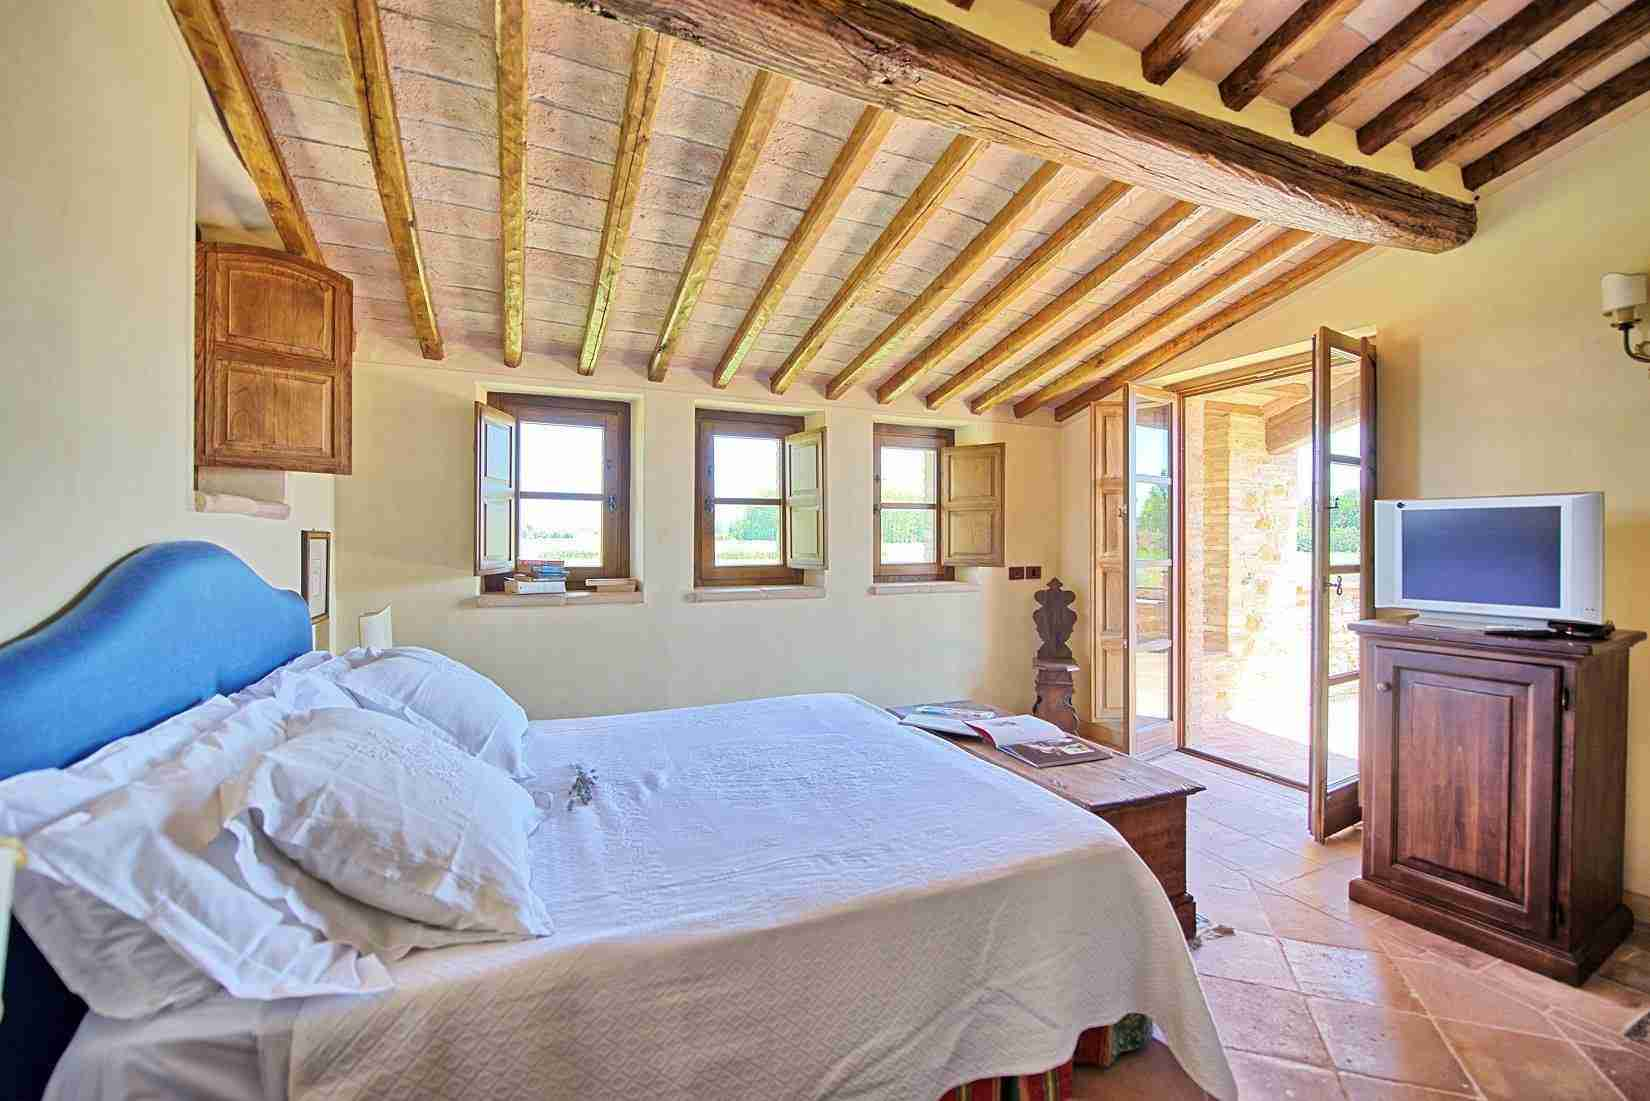 42 Assisi double bedroom